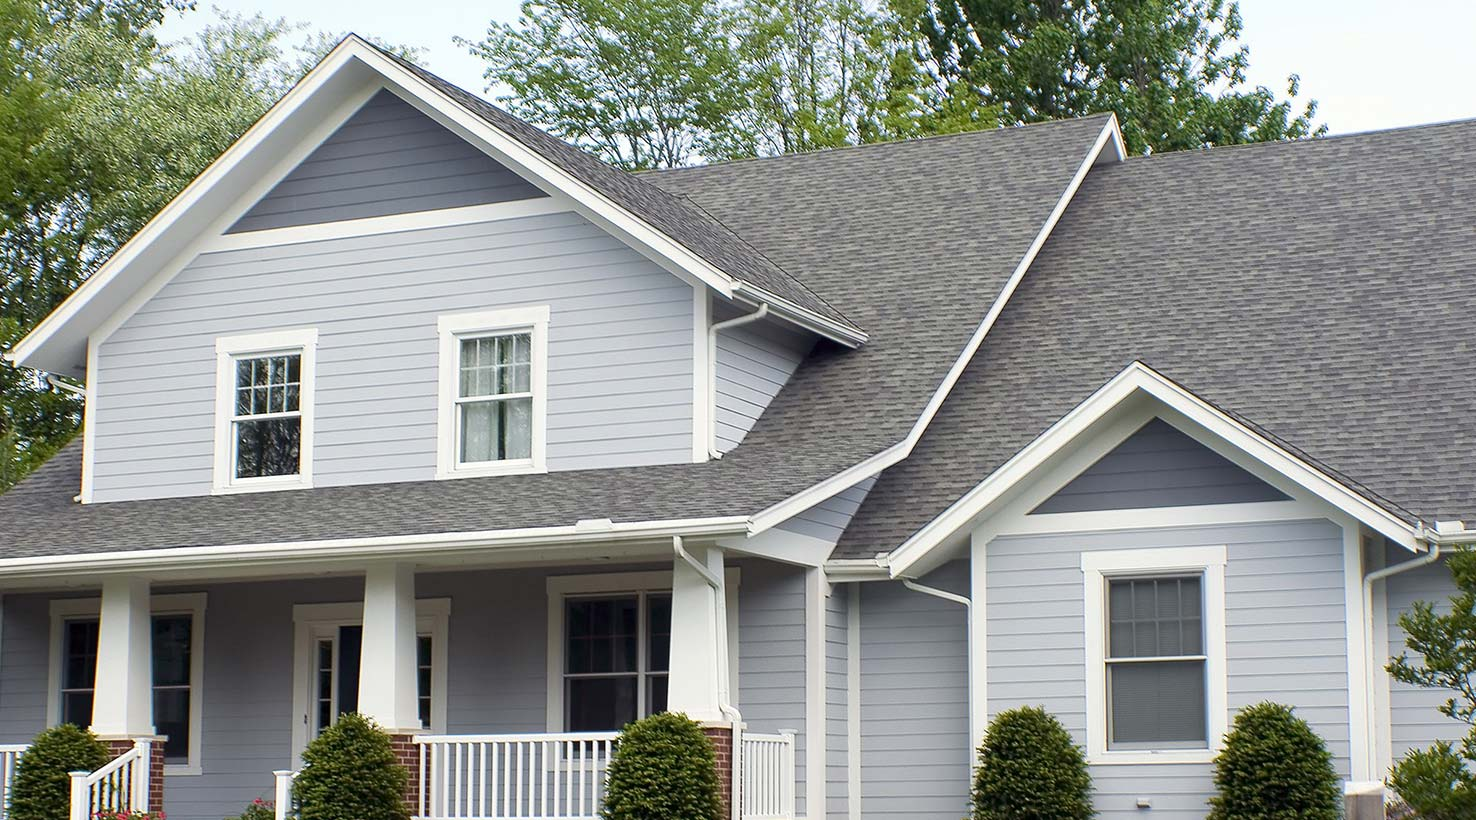 House Exterior Colours enhance its Aesthetic Appeal